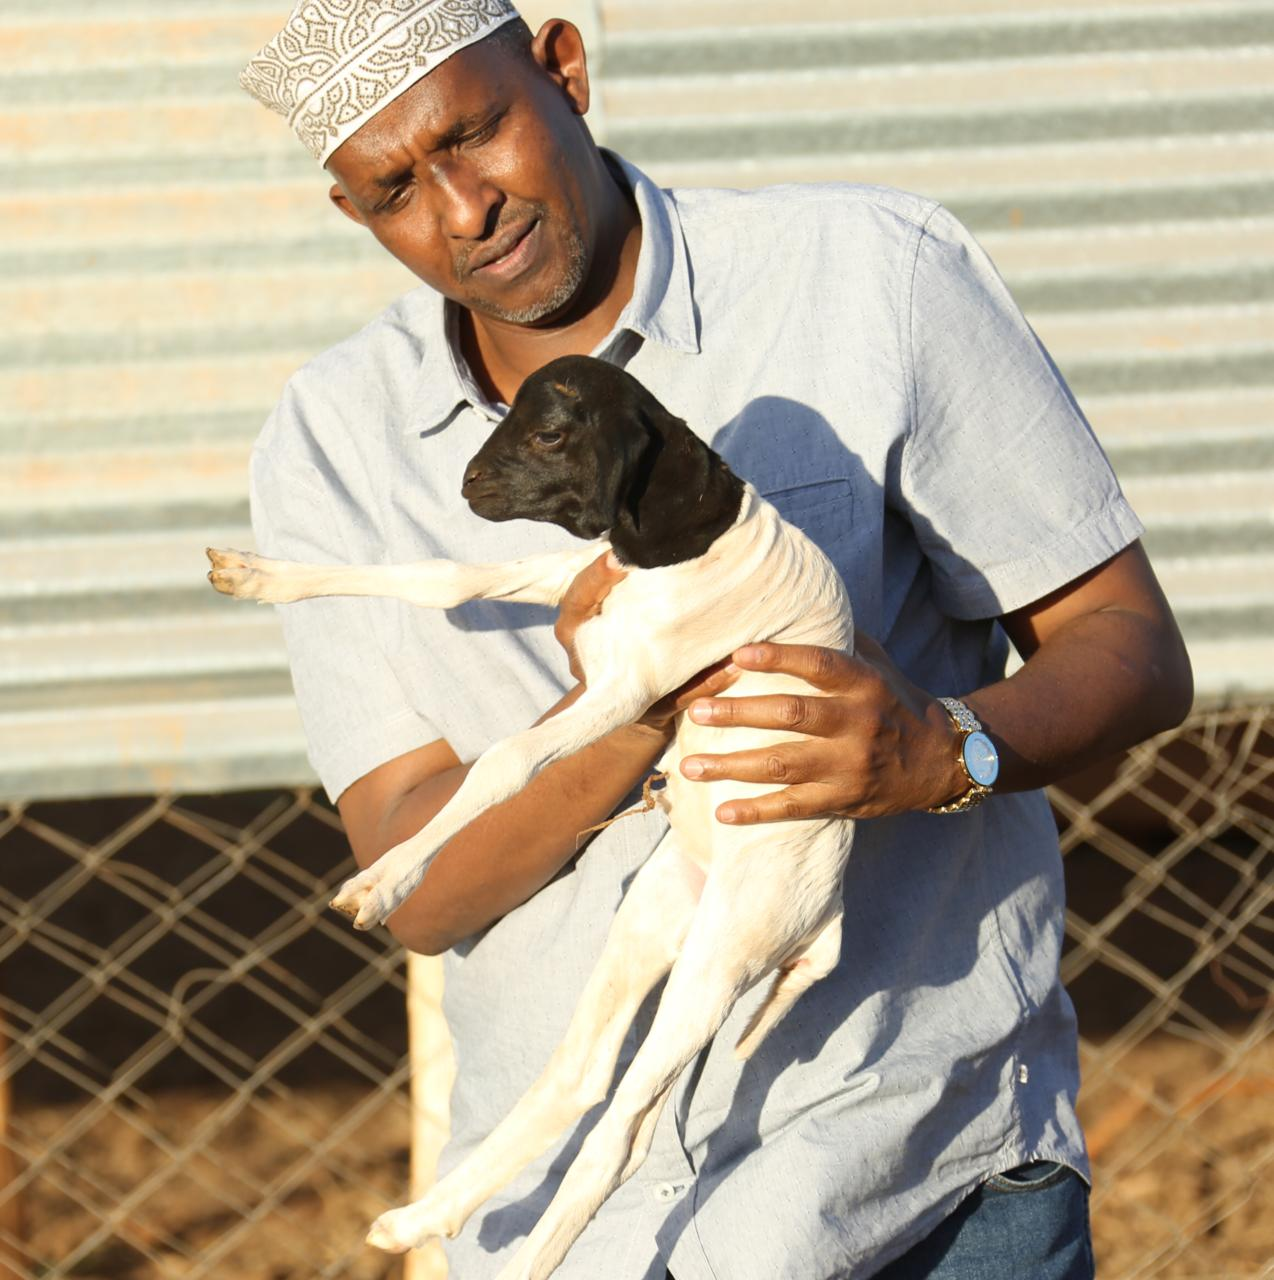 WhatsApp Image 2019 08 26 at 11.45.21 1 - Garissa MP Aden Duale shows his soft side (Photos)